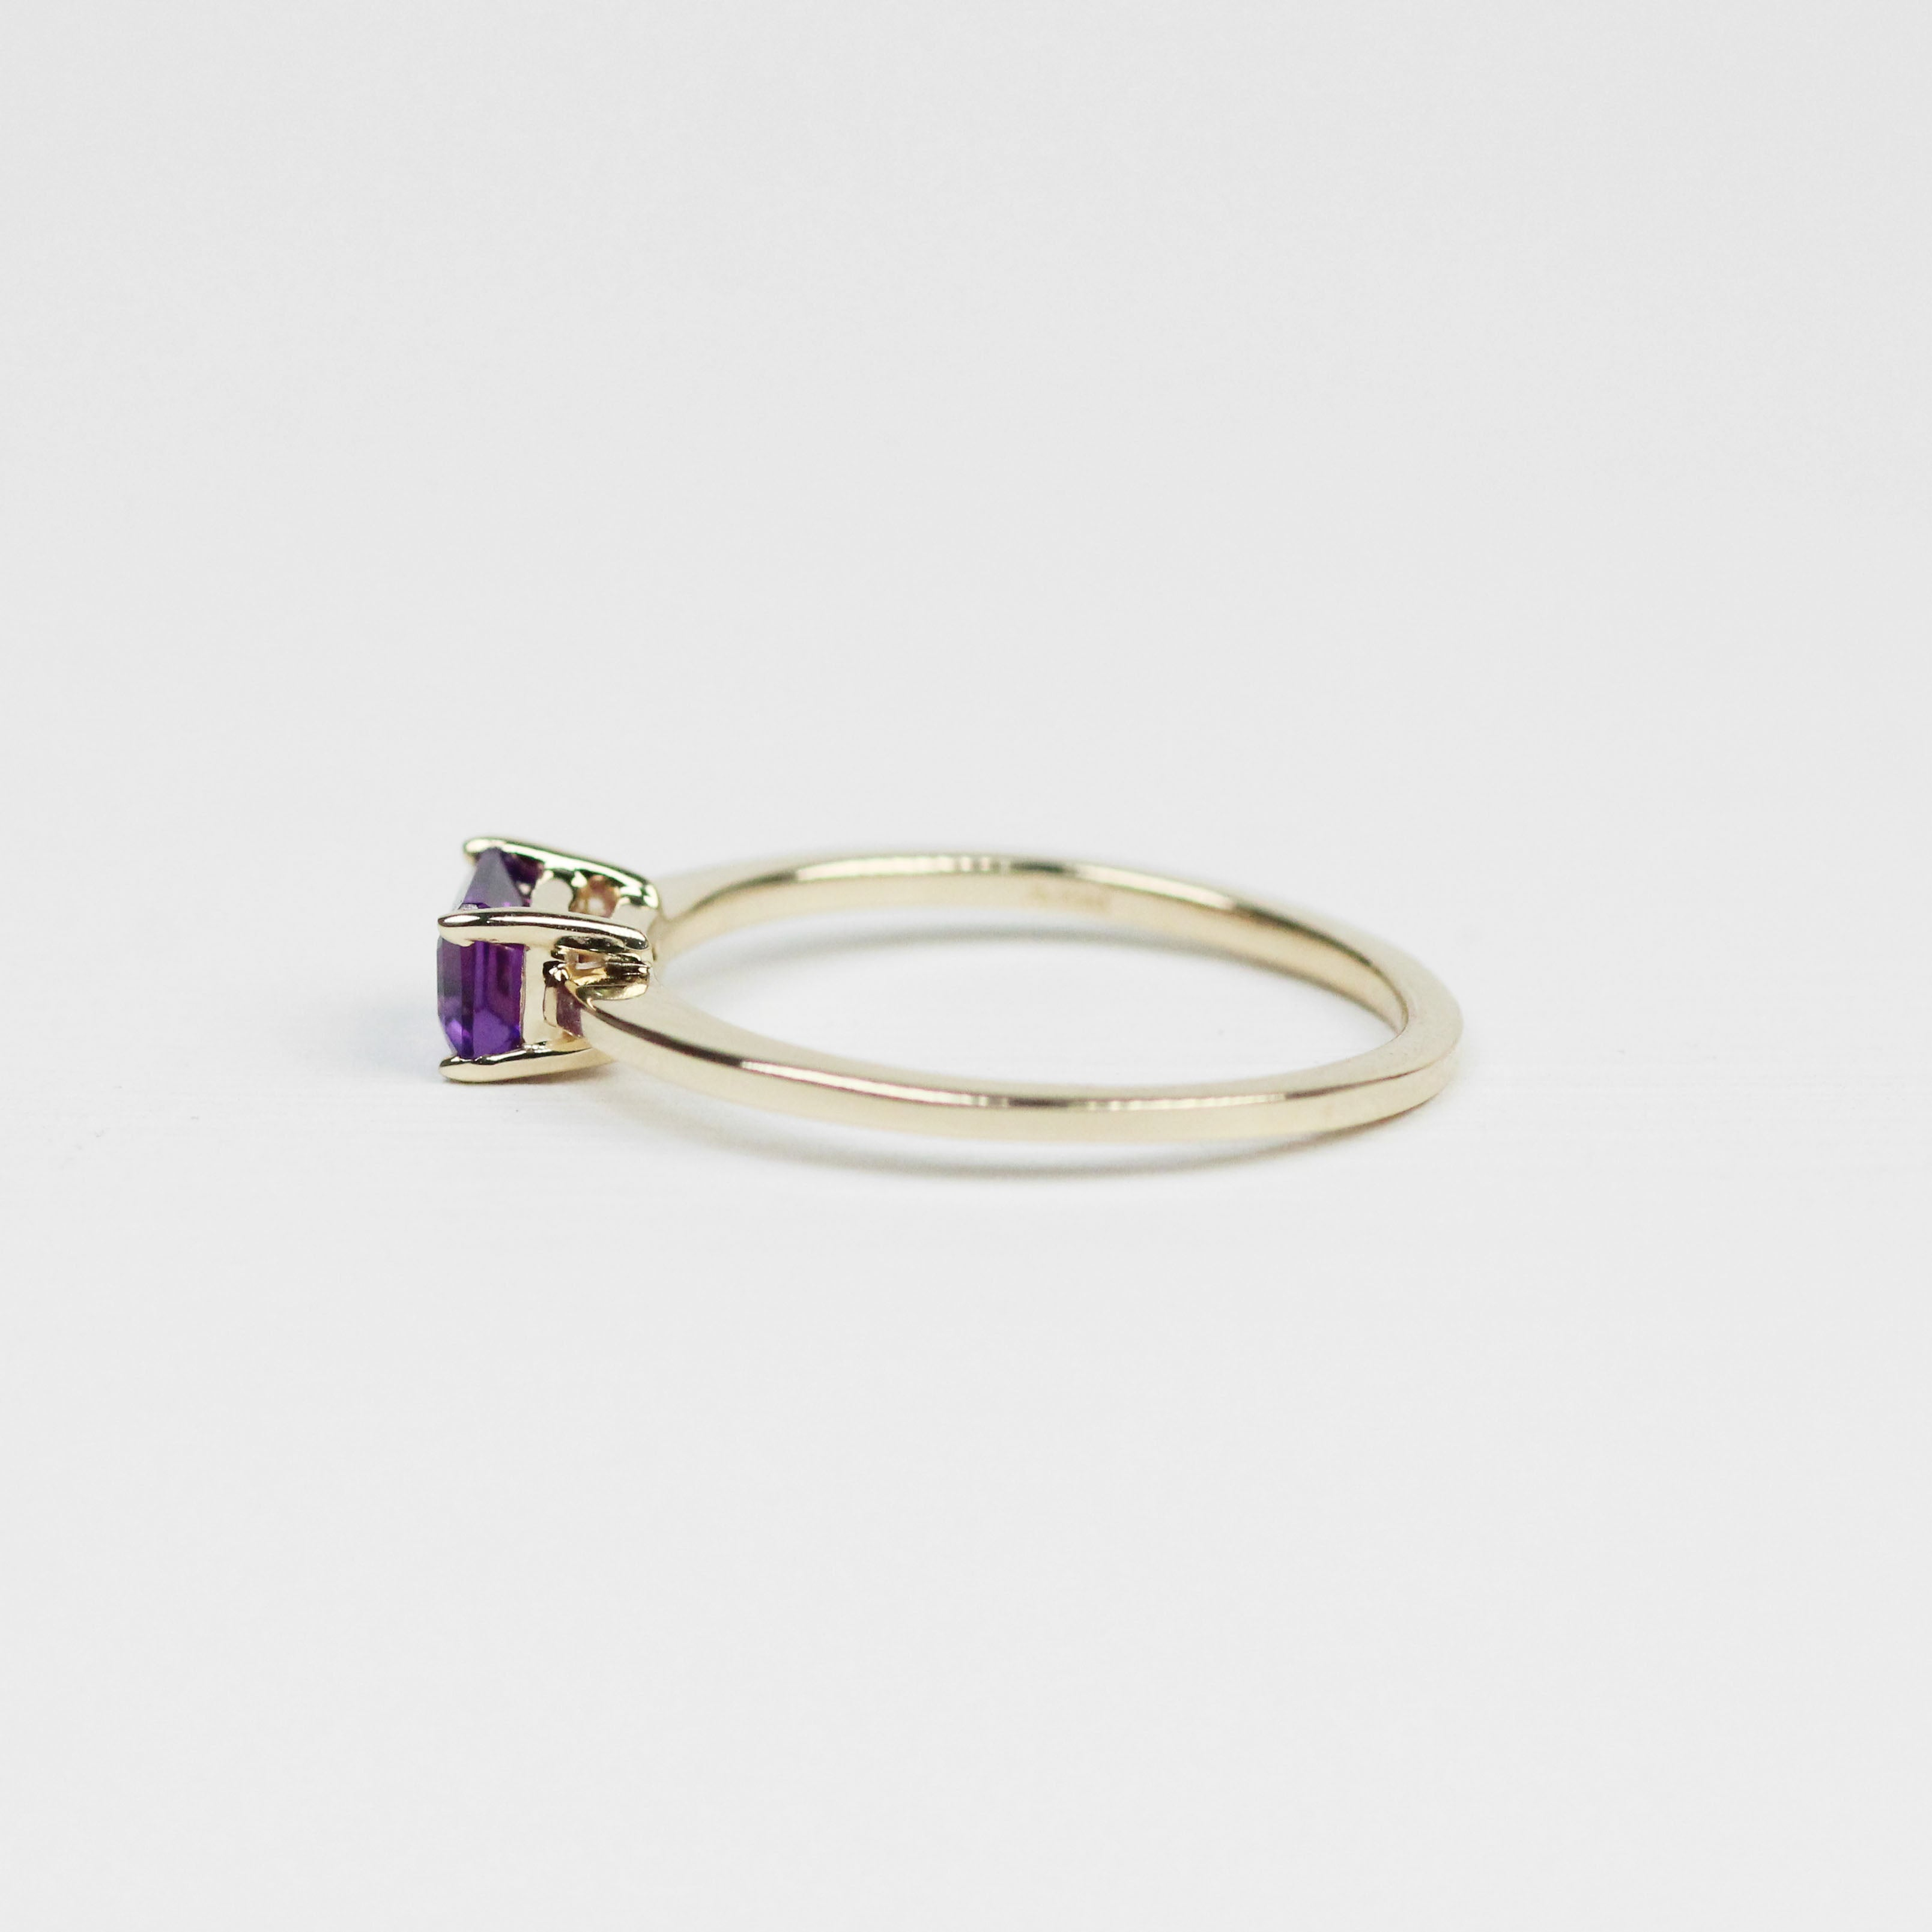 Ruthie Ring with Purple Amethyst - Your choice of metal - Custom